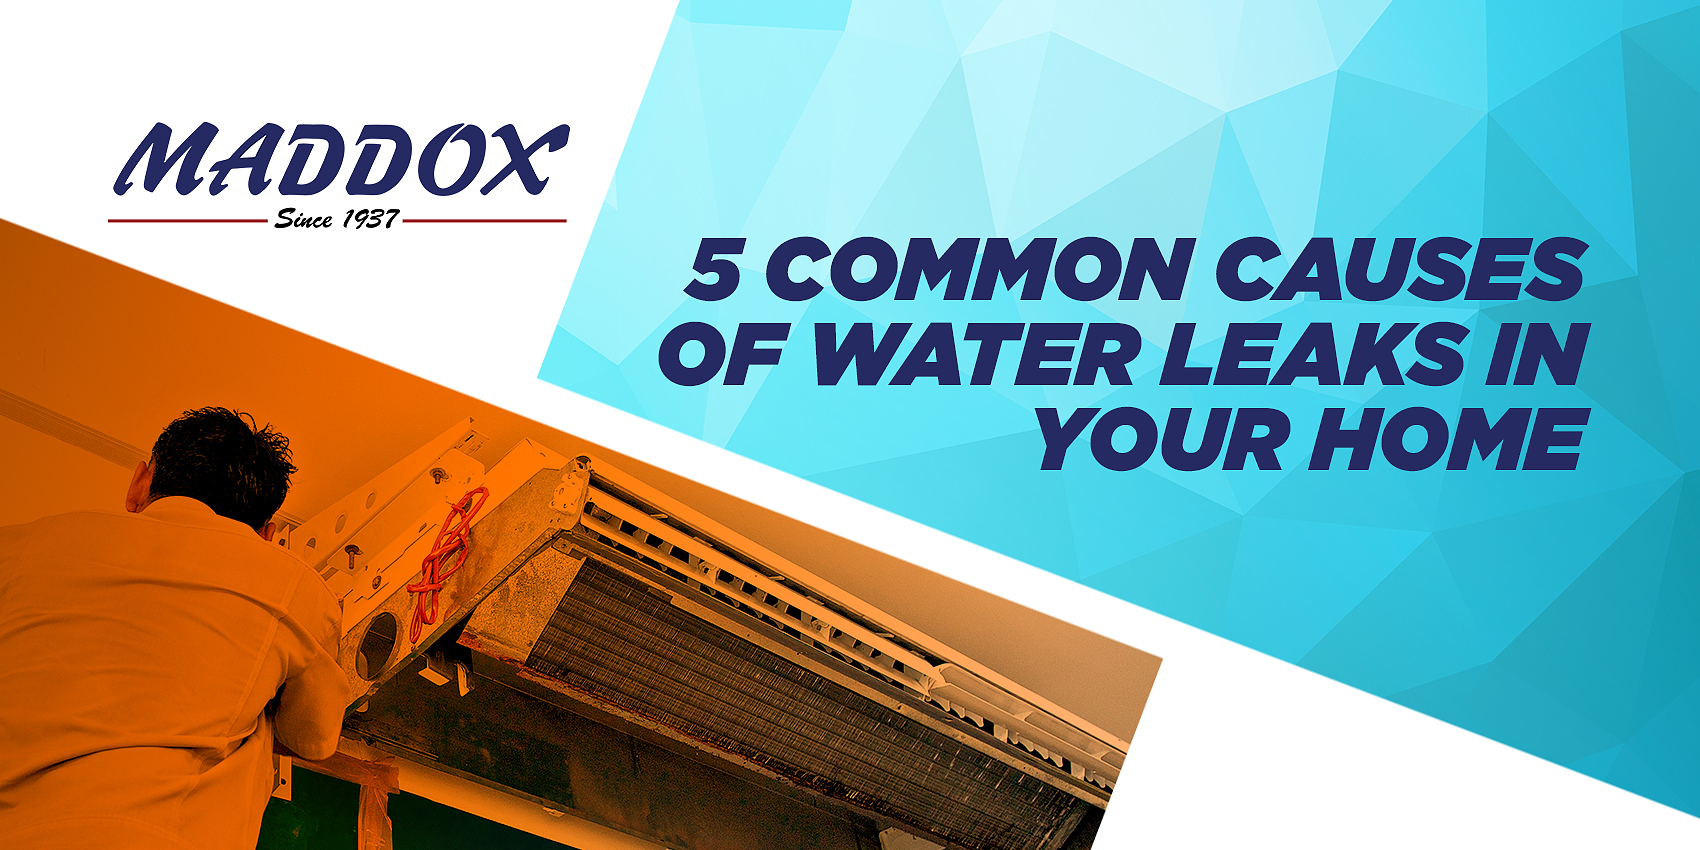 5 Common Causes of Water Leaks in Your Home